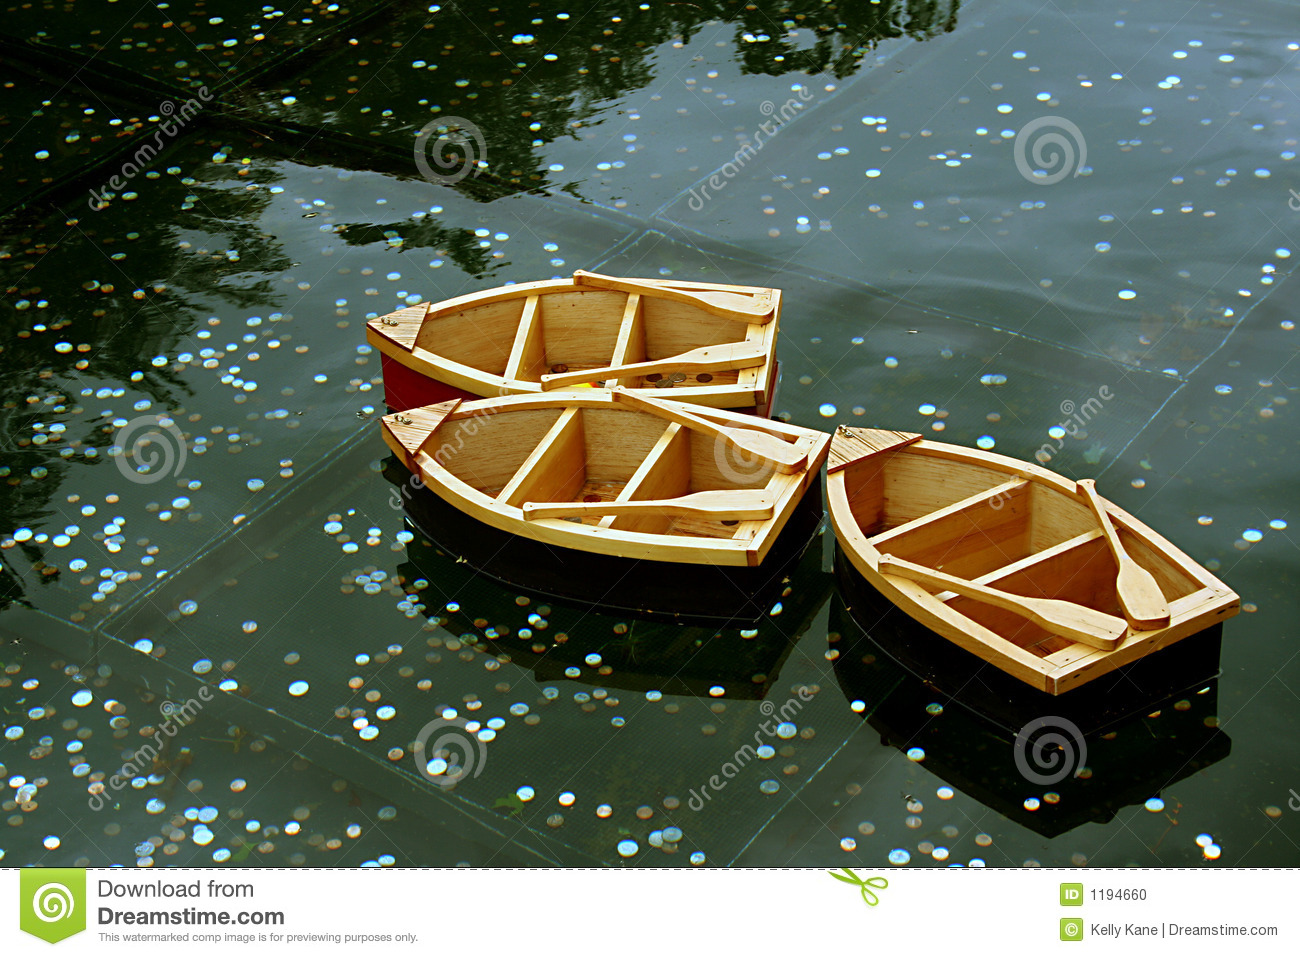 Wooden Boats stock photo. Image of donation, wooden, contribute - 1194660